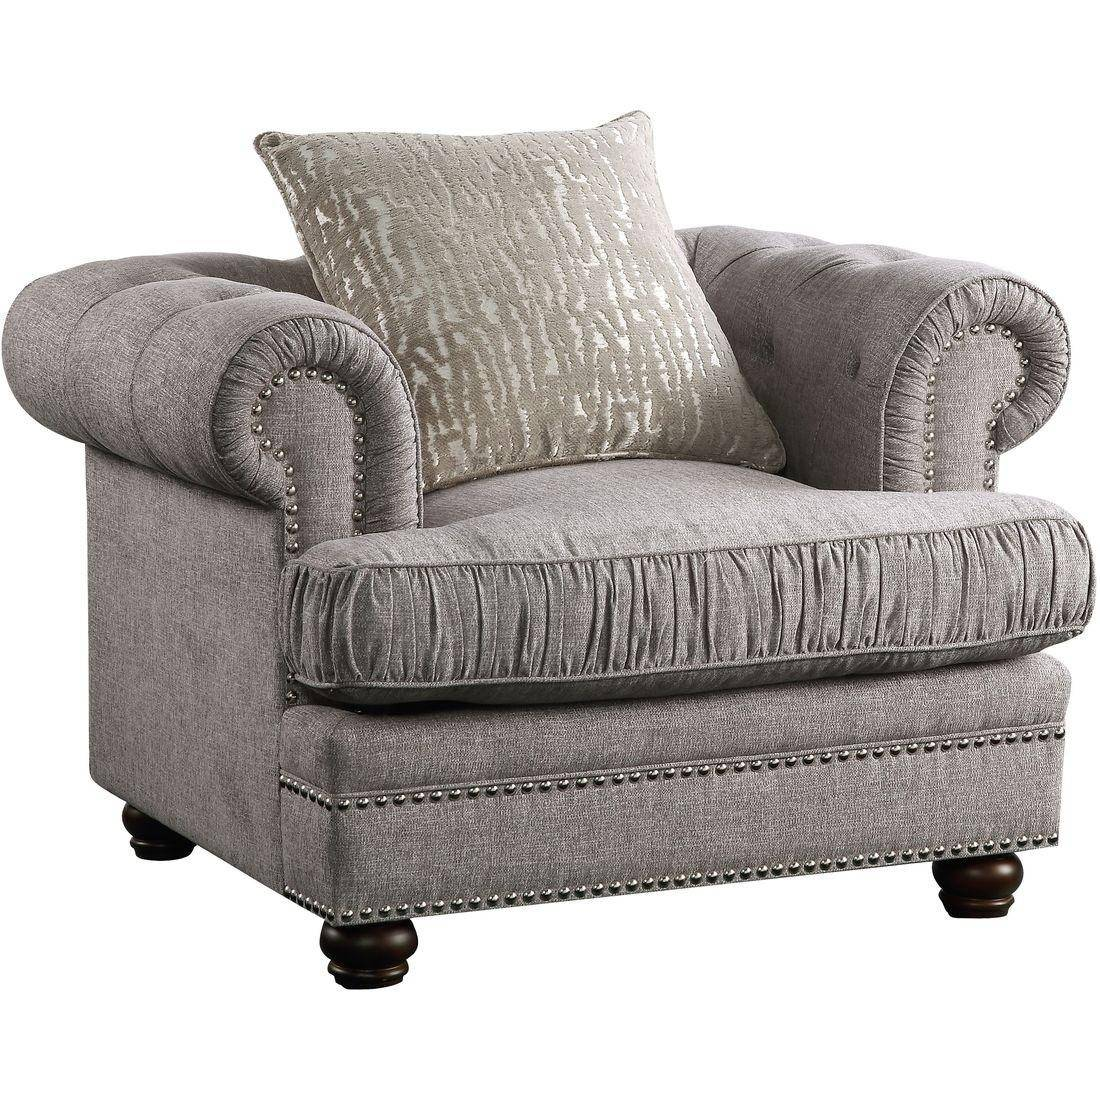 Gray Fabric Tufted Chair W Pillow Gardenia 53097 Acme